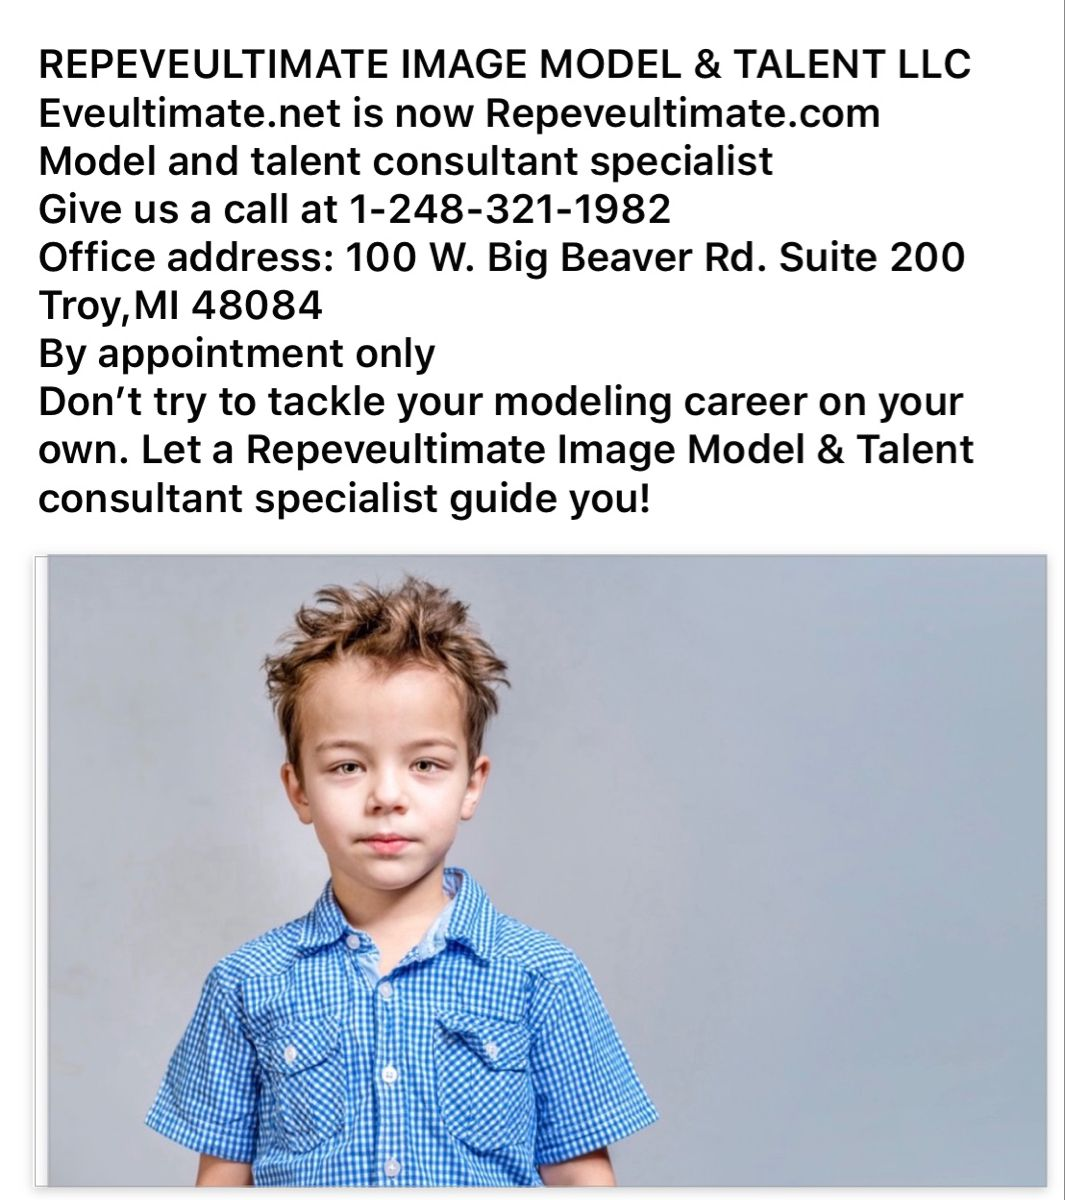 Repeveultimate Image Model & Talent LLC in 2020 Stylish